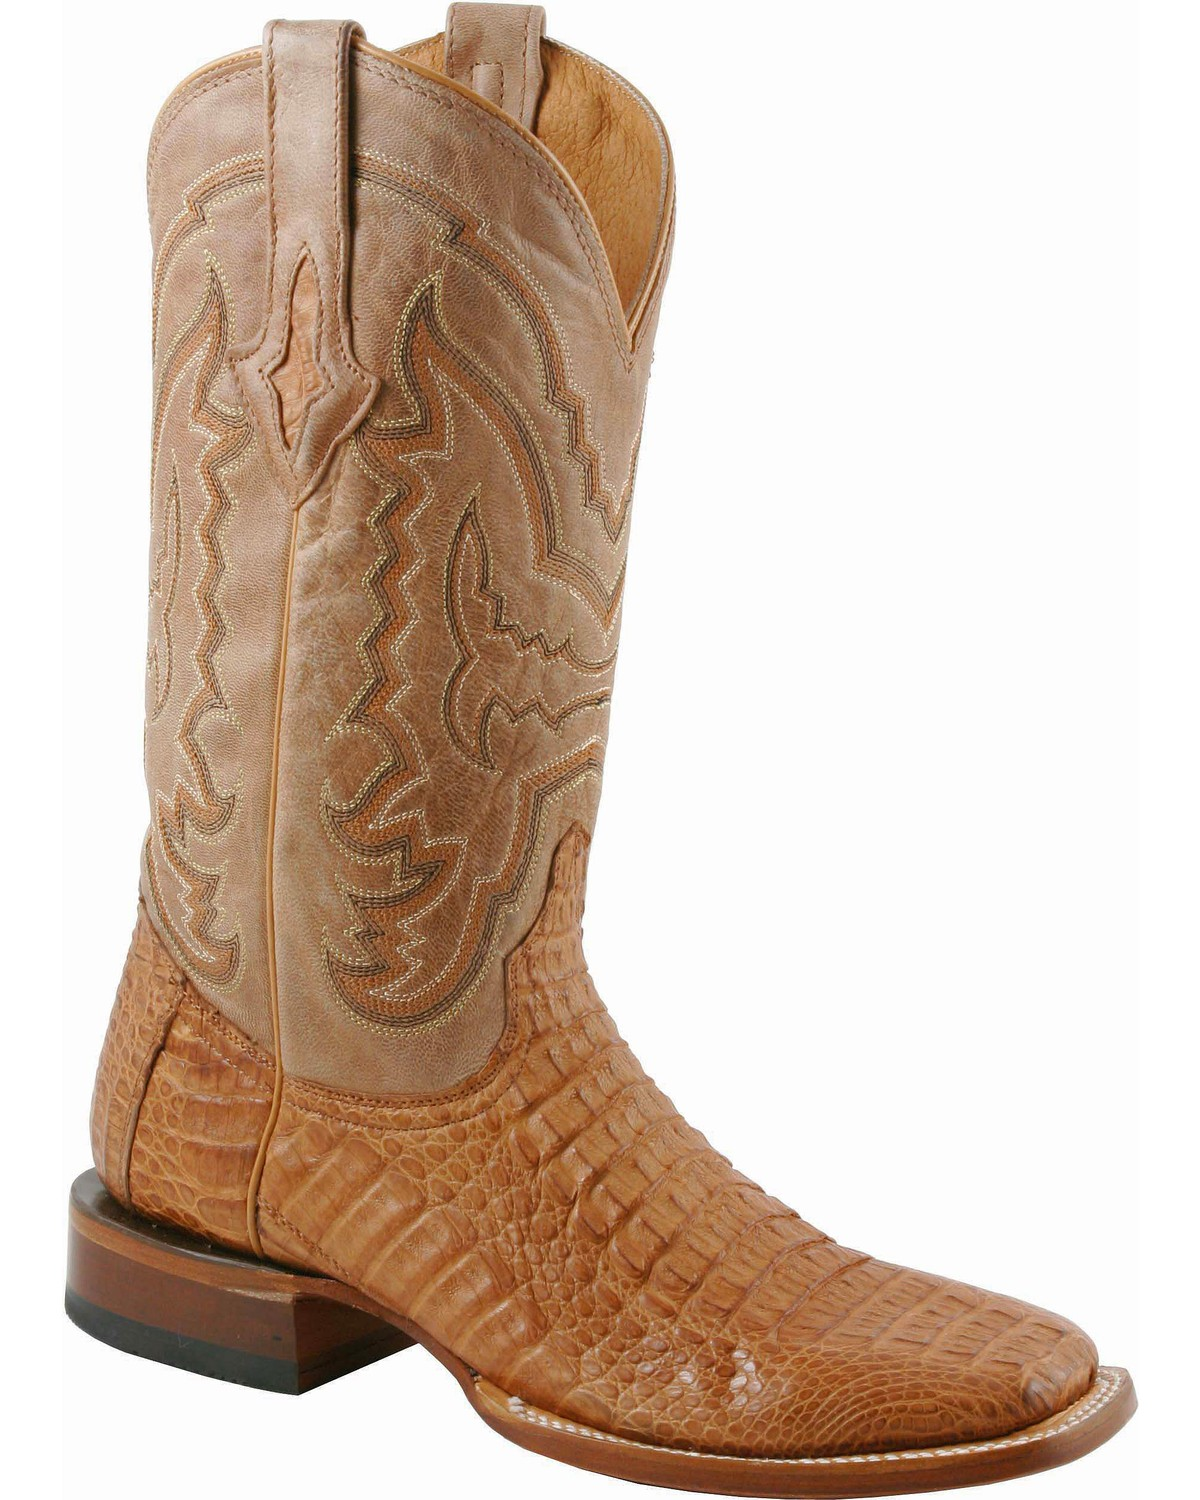 Lucchese Mens Exotic Caiman Western Boots Cigar hires